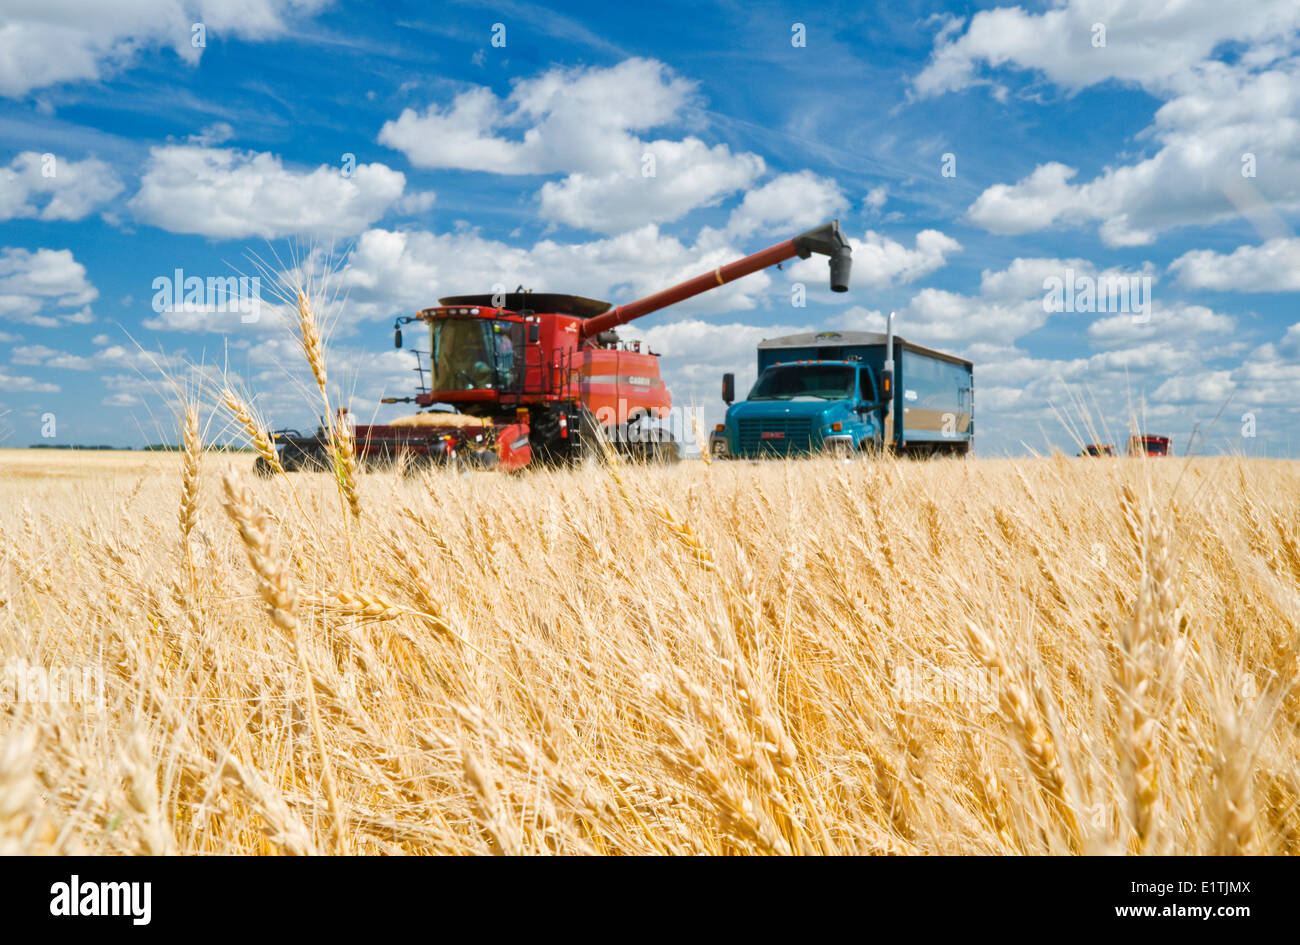 a combine augers barley into a farm truck parked next to a wheat field,  during the harvest, near Dugald, Manitoba, Canada - Stock Image